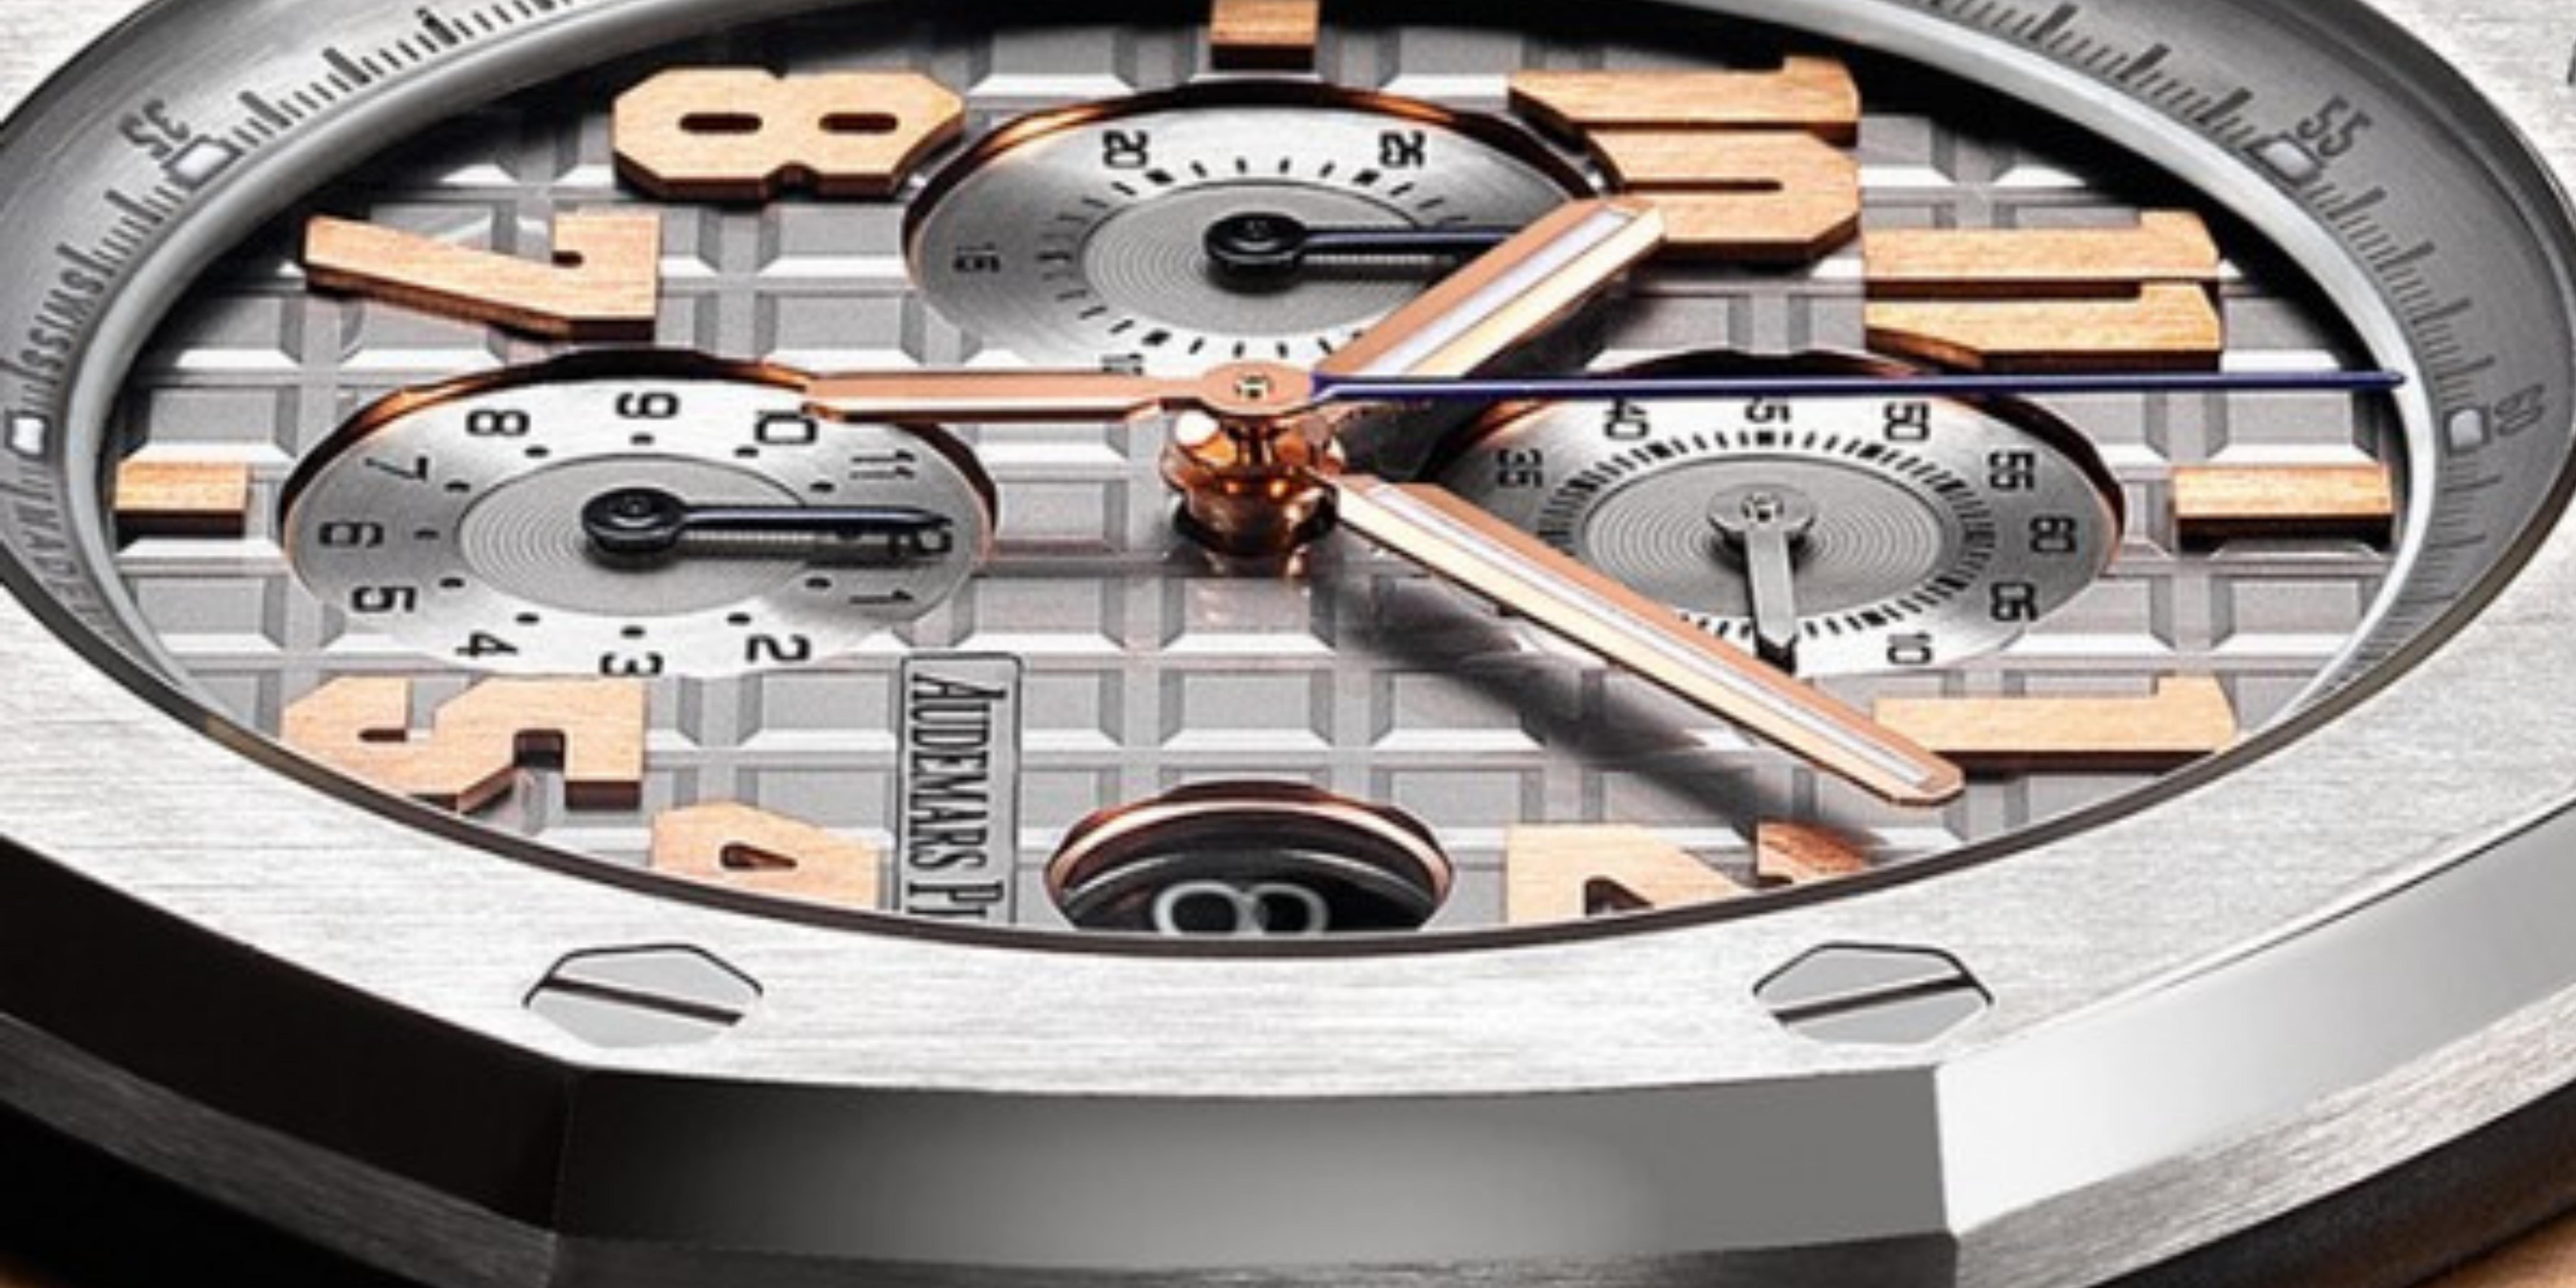 Audemars-Piguet-Royal-Oak-Offshore-LeBron-James-Limited-Edition-4-e1441085000381